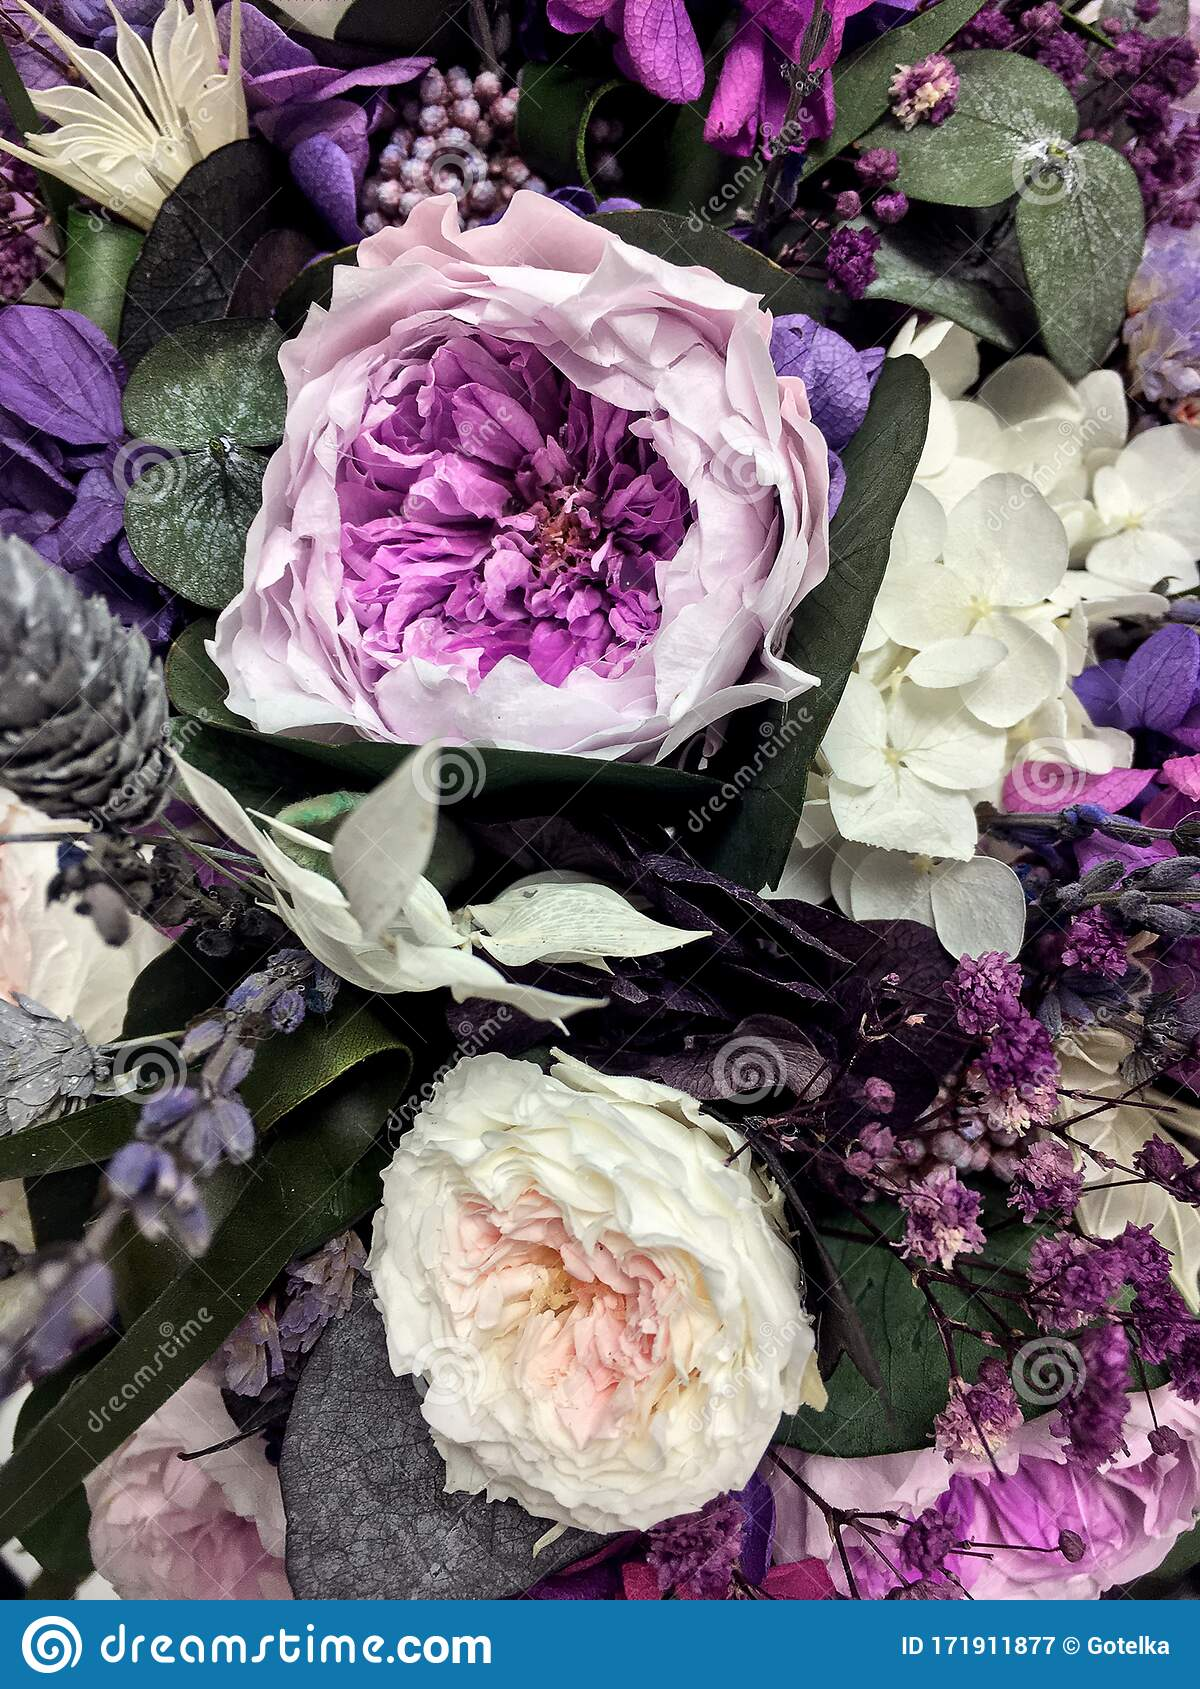 Beautiful Bouquet Of Preserved Flowers Hydrangea Eucalyptus Purple And White Peony Roses Dried Flowers Bouquet Of Spring Stock Image Image Of Exotic Design 171911877